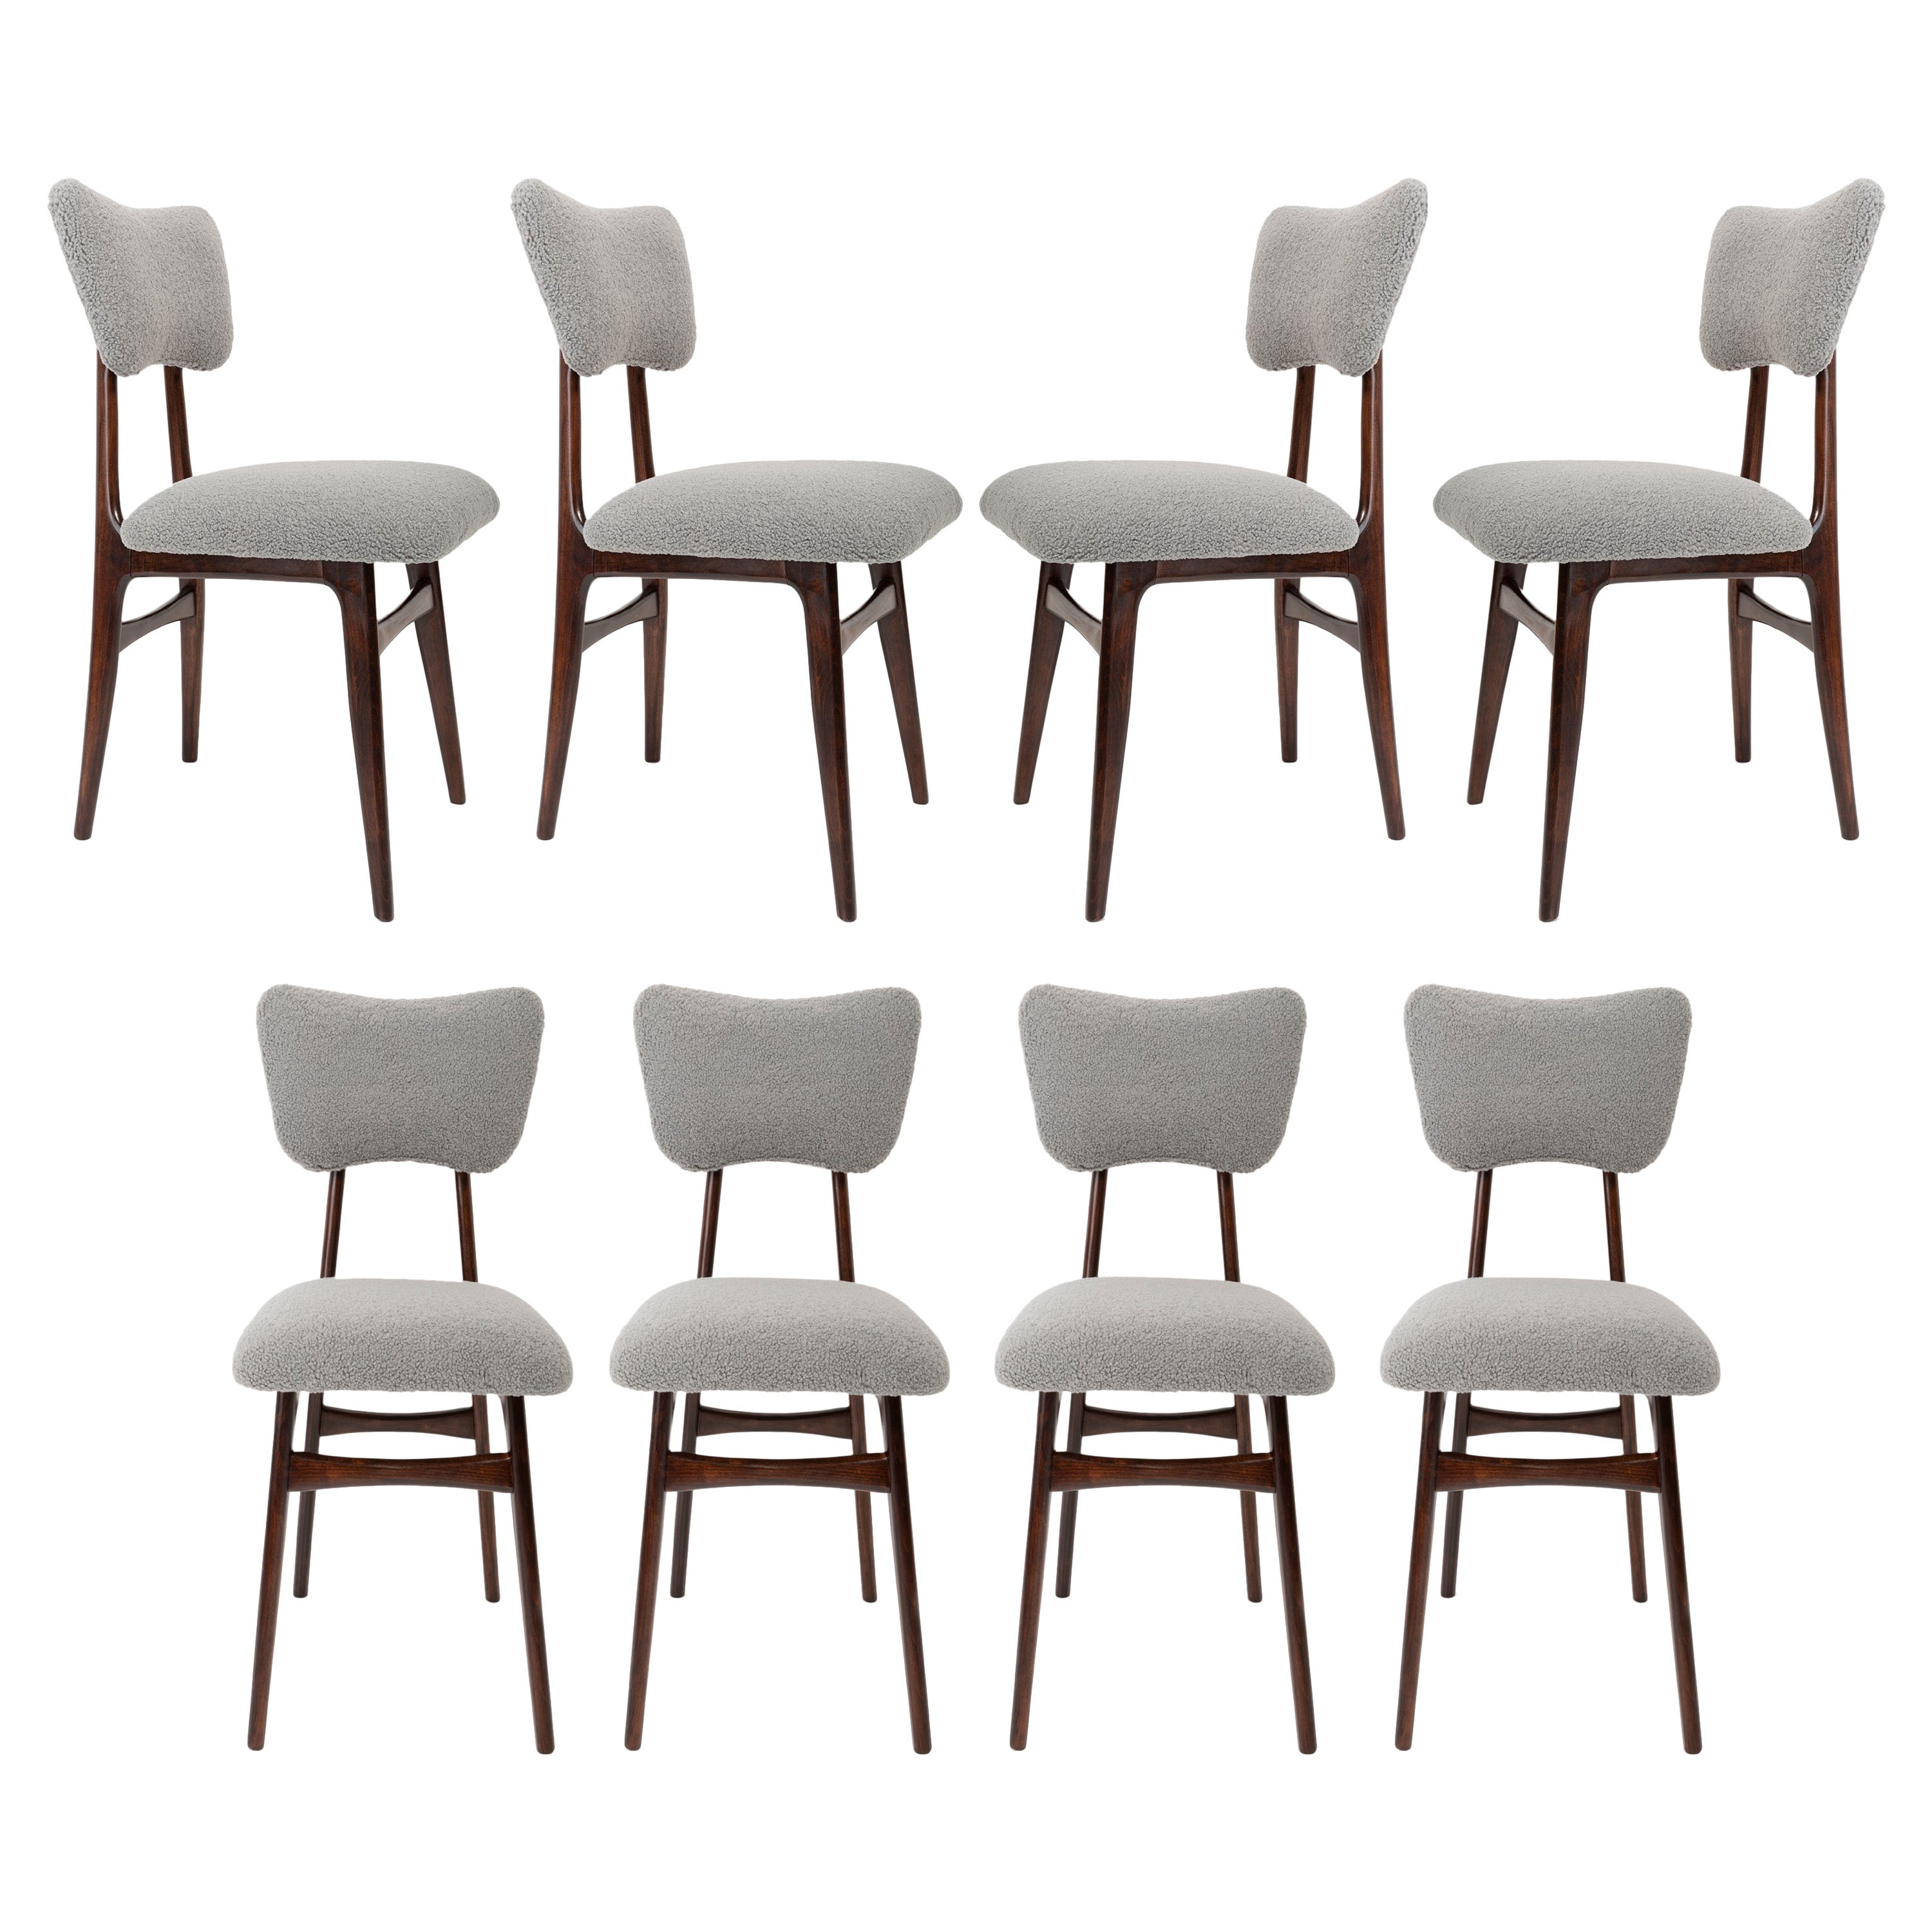 Set of Eight 20th Century Gray Boucle Chairs, 1960s